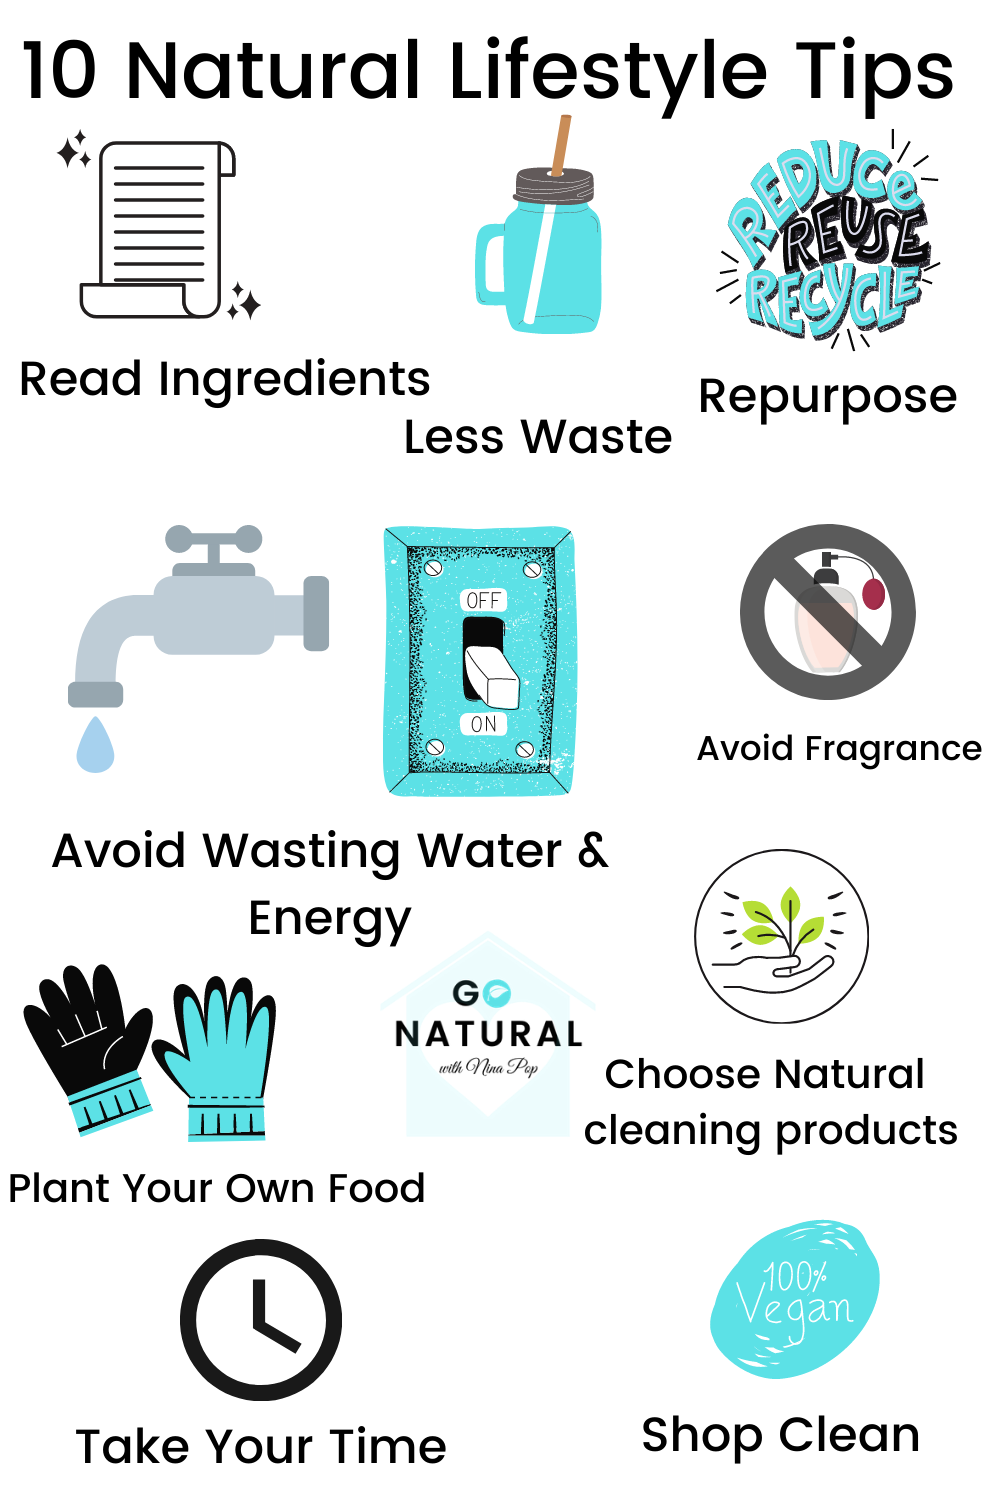 This image shows a snapshot of 10 natural lifestyle tips, that we share more details about in this natural lifestyle blog